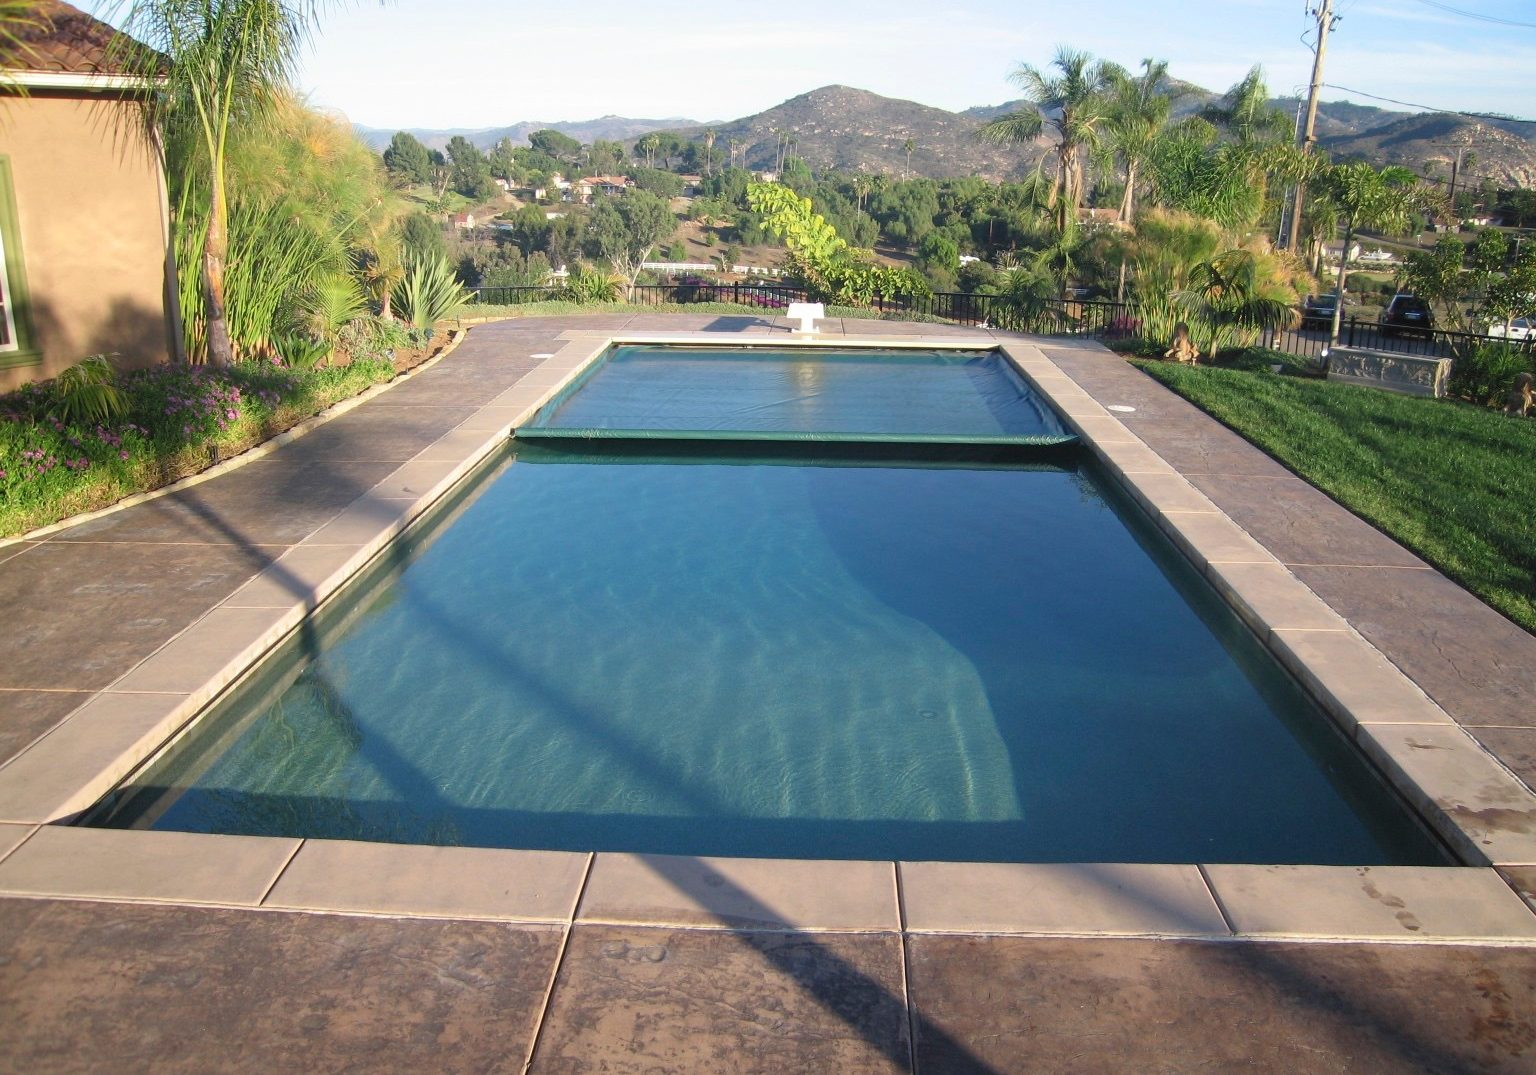 Automatic safety cover project in Orange County California done by Poolsafe